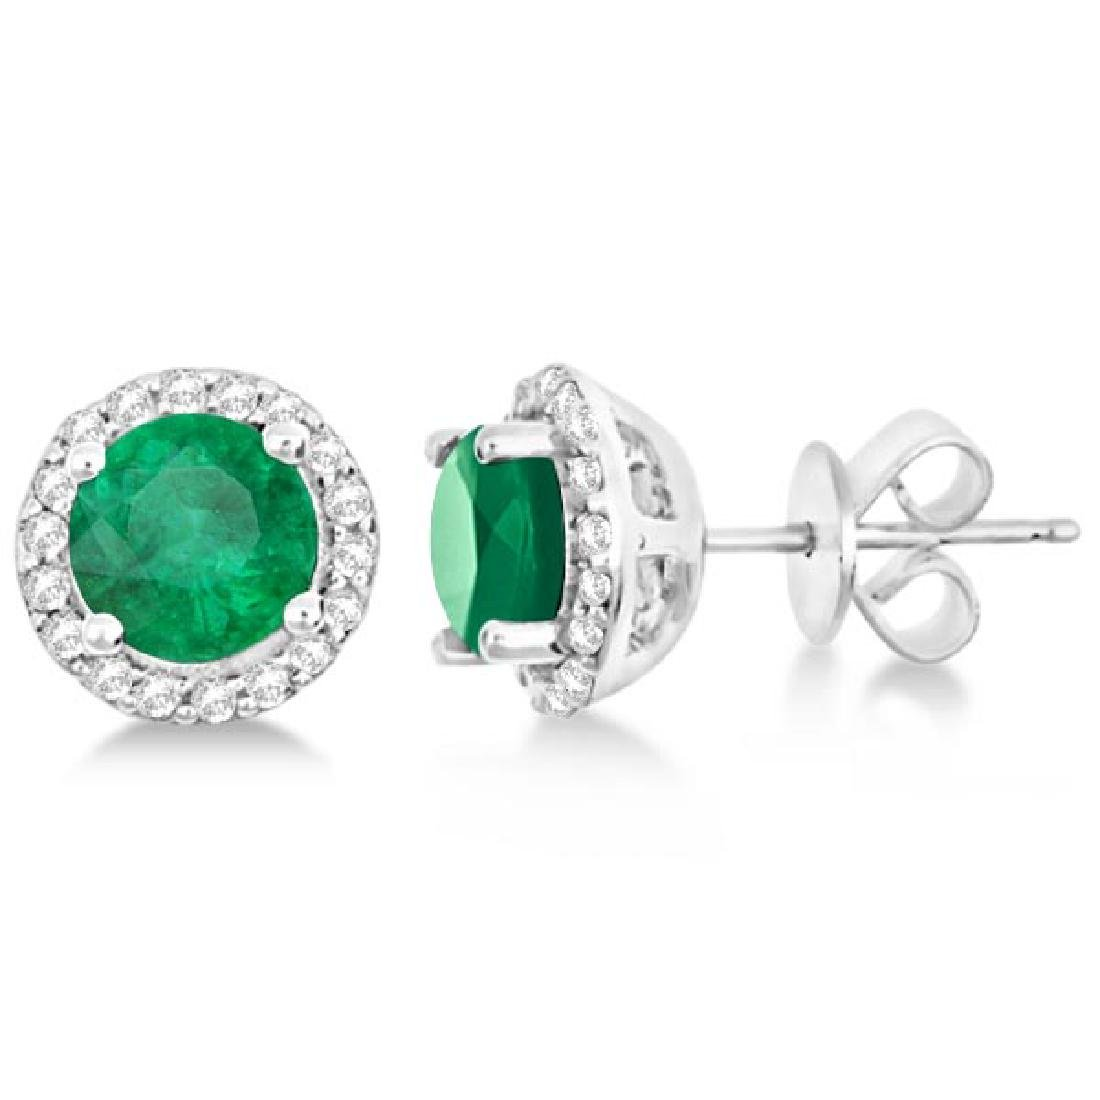 Ladies Emerald and Diamond Halo Stud Earrings